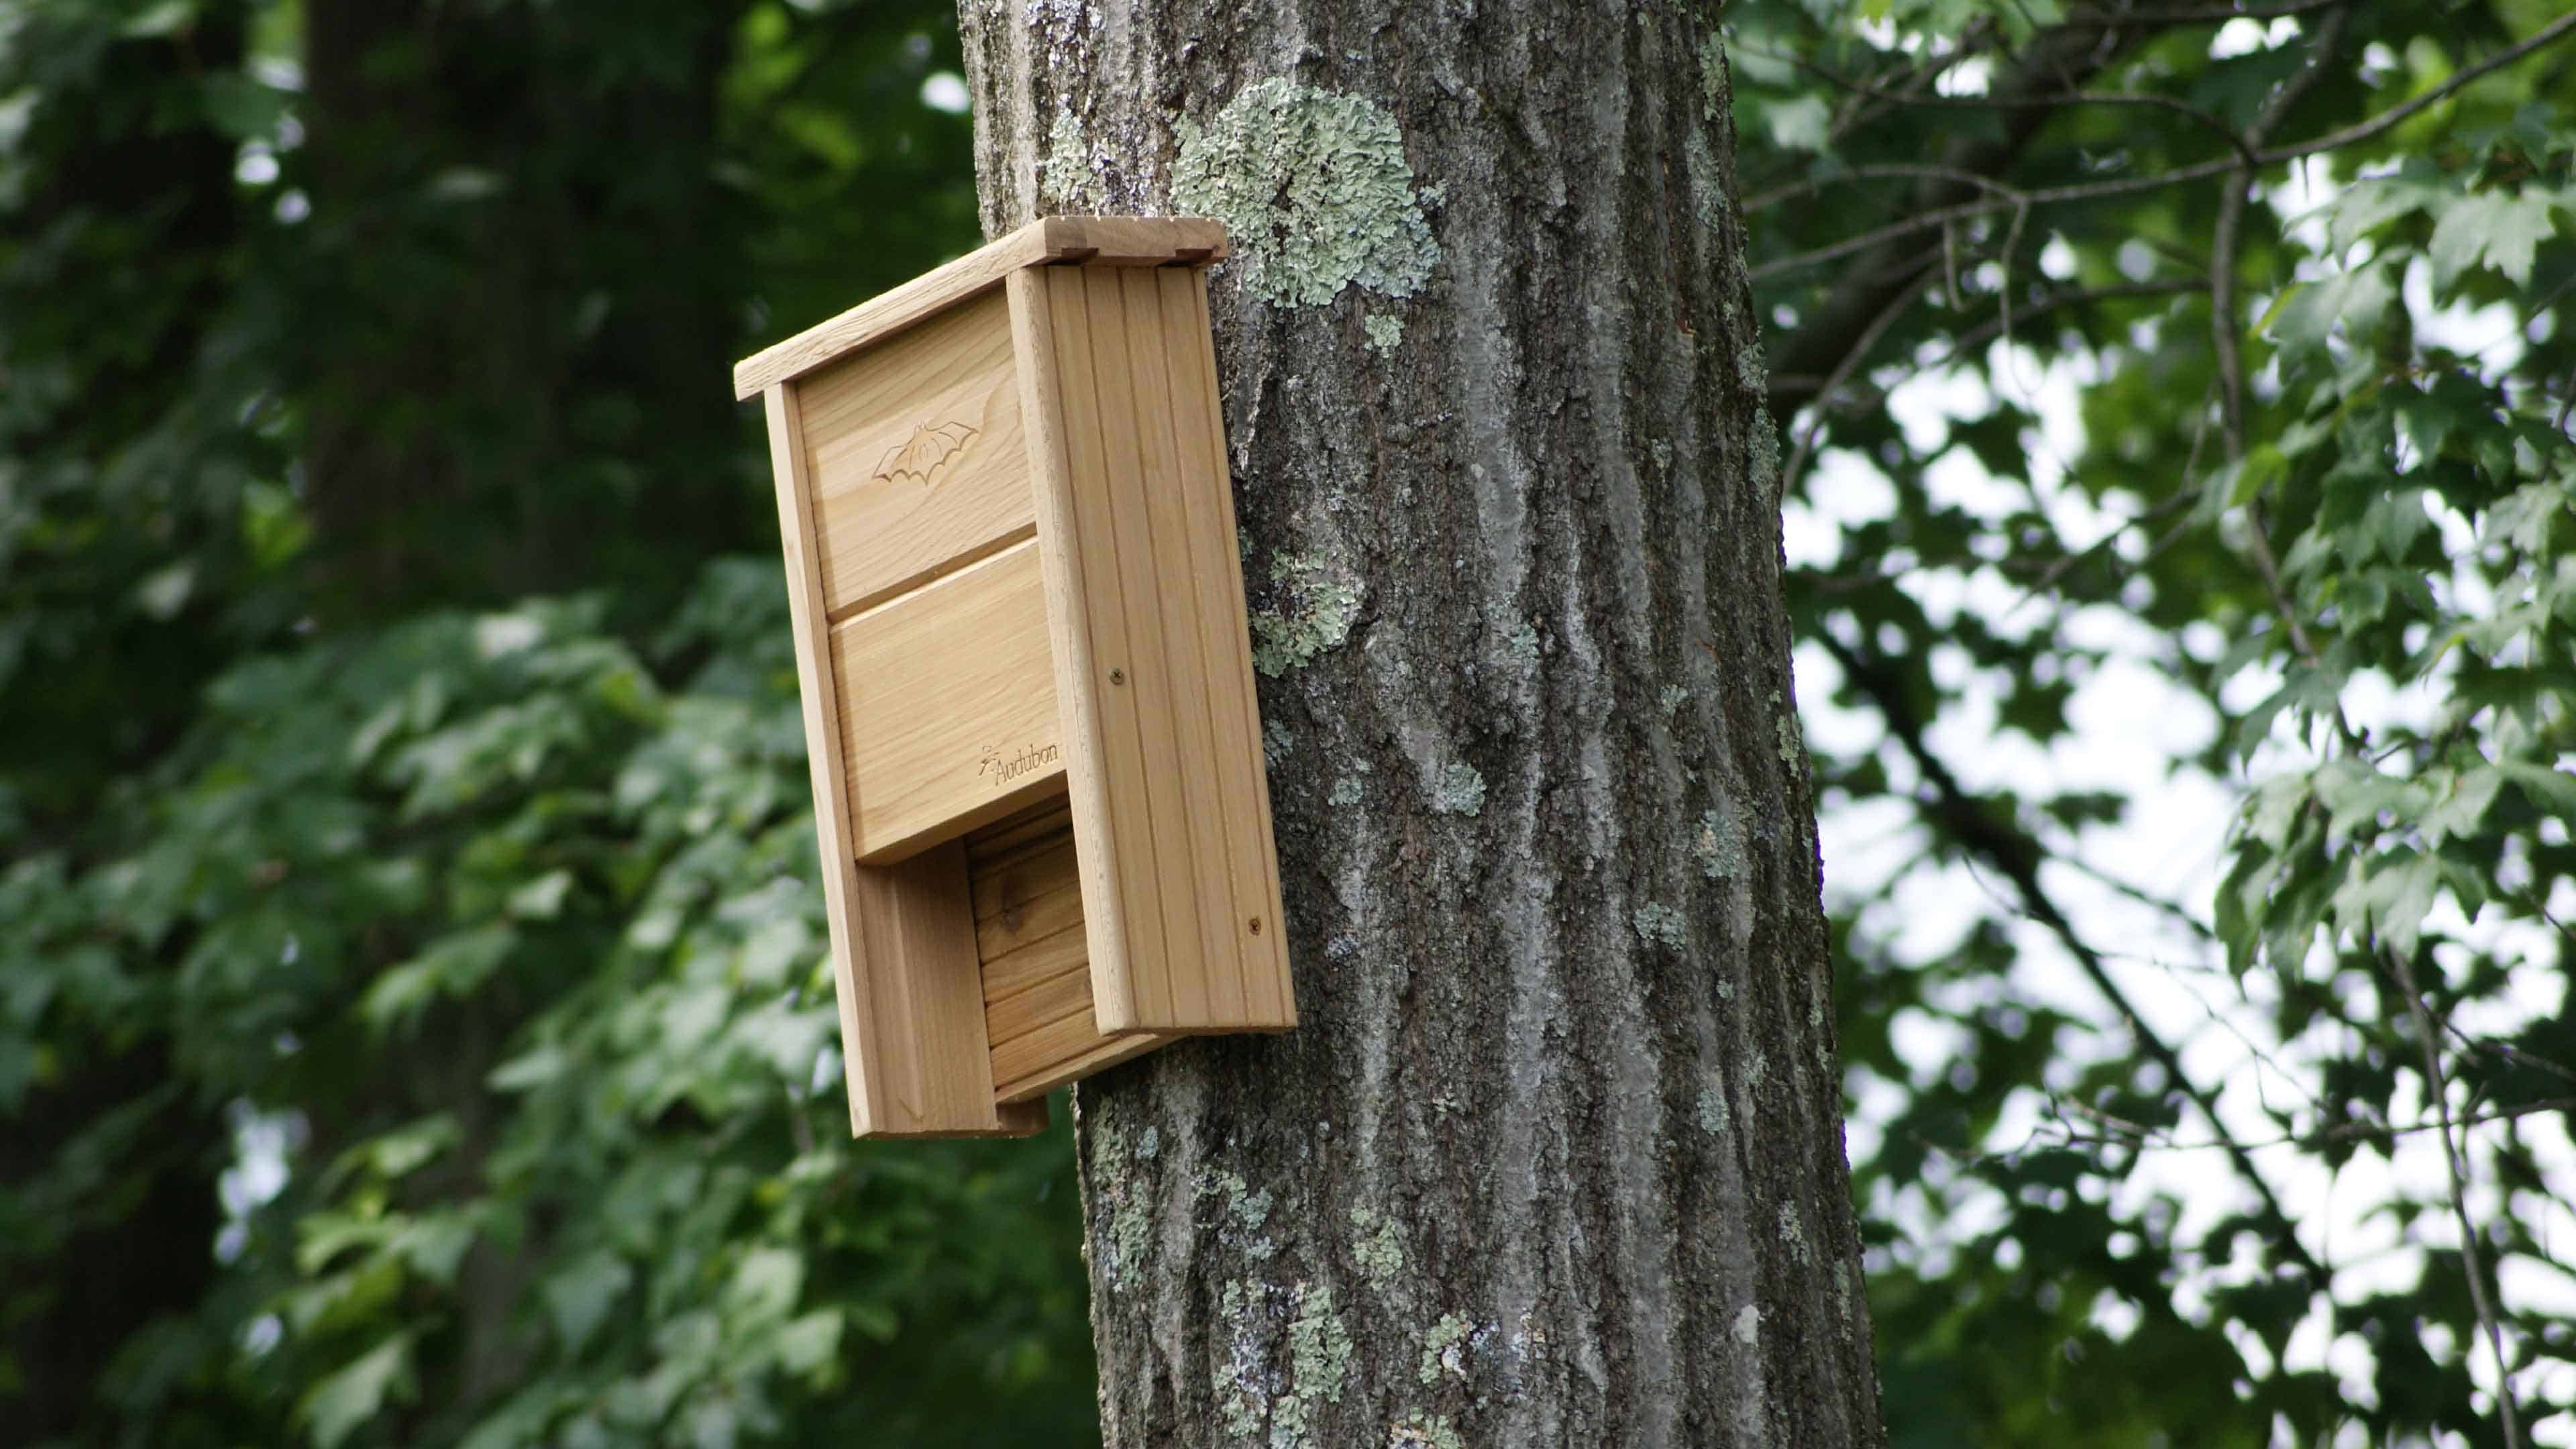 Attracting bats to your yard has many benefits.